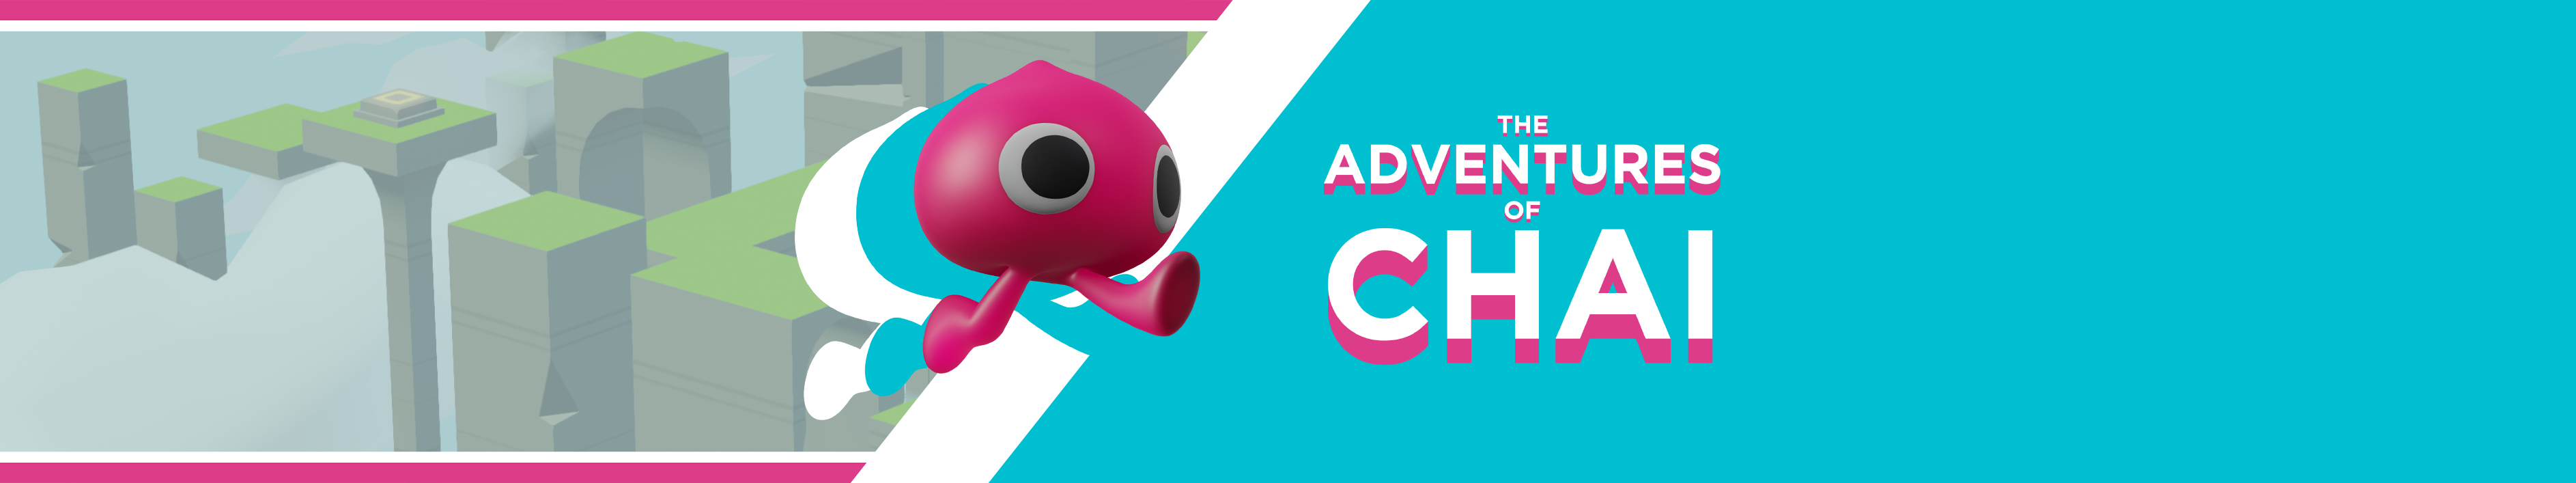 The Adventures of Chai